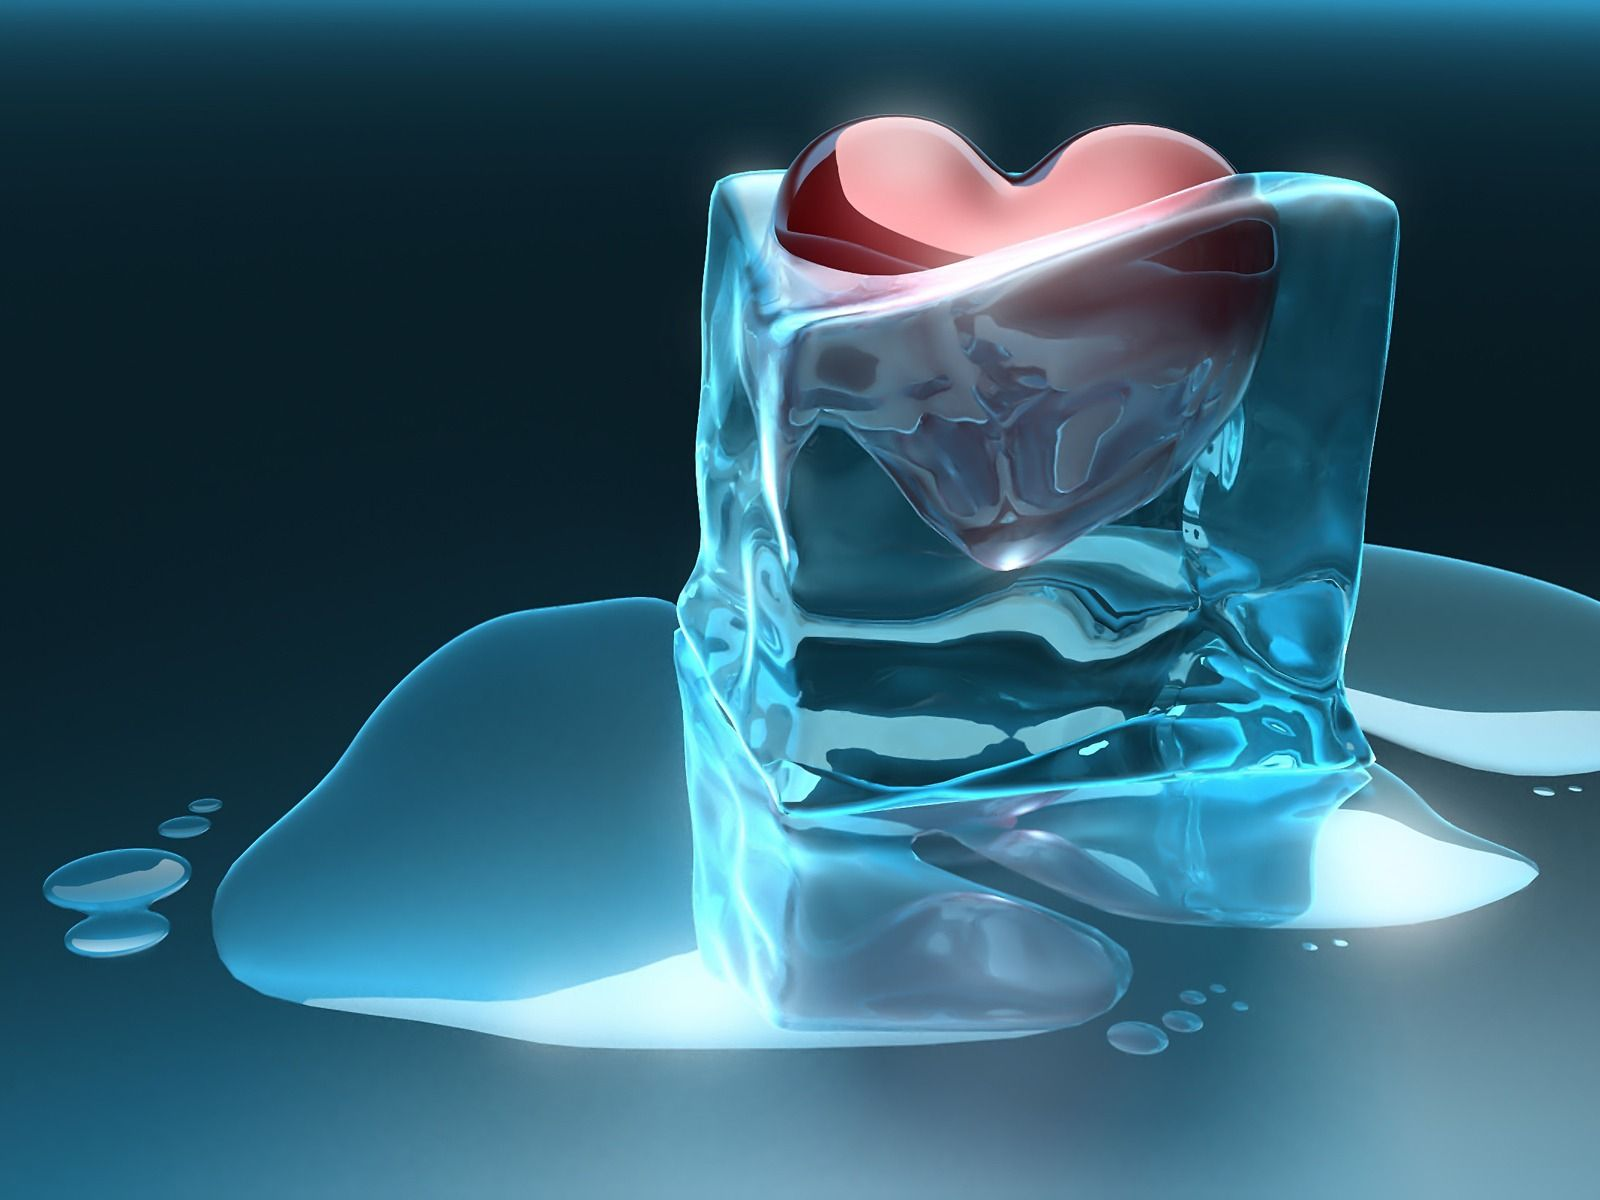 3d wallpapers for desktop | multi heart hd 3d wallpaper good quality